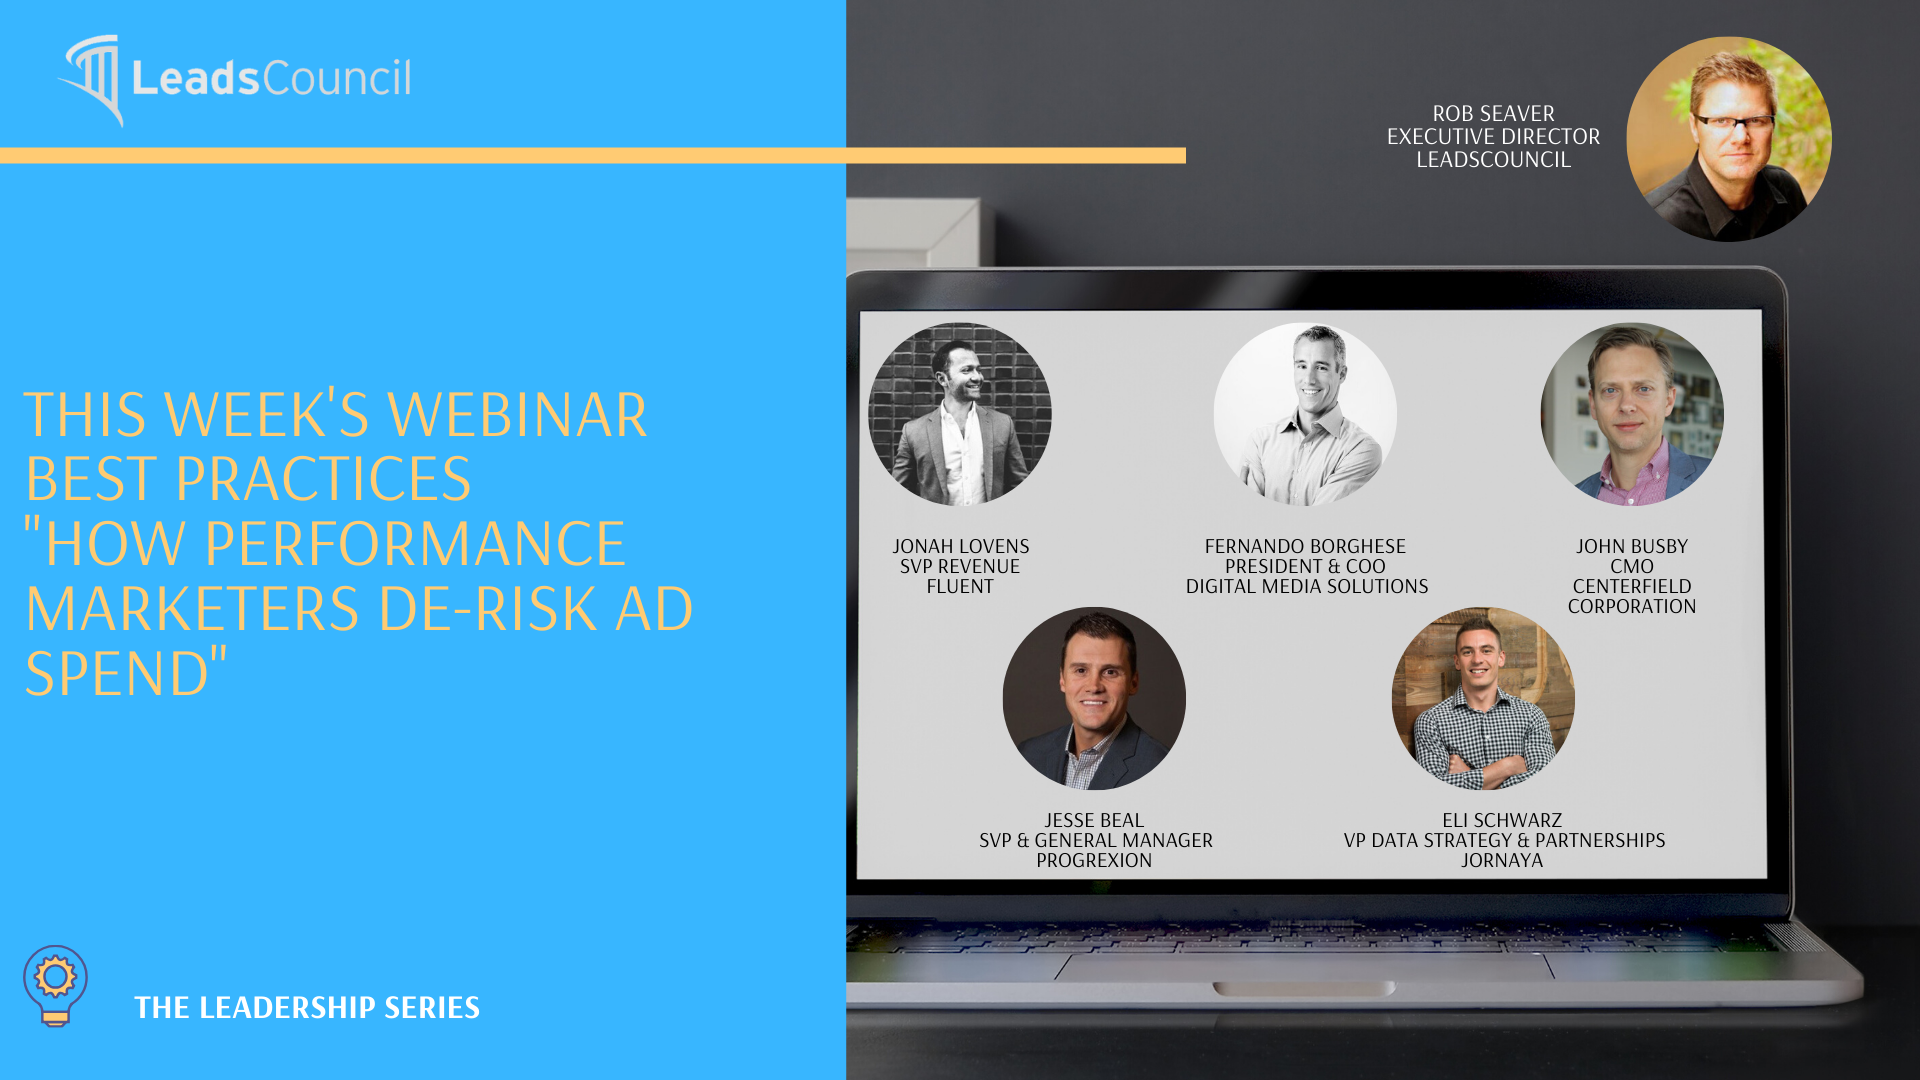 LeadsCouncil Leadership Webinar Series How Performance Marketers De-Risk Ad Spend